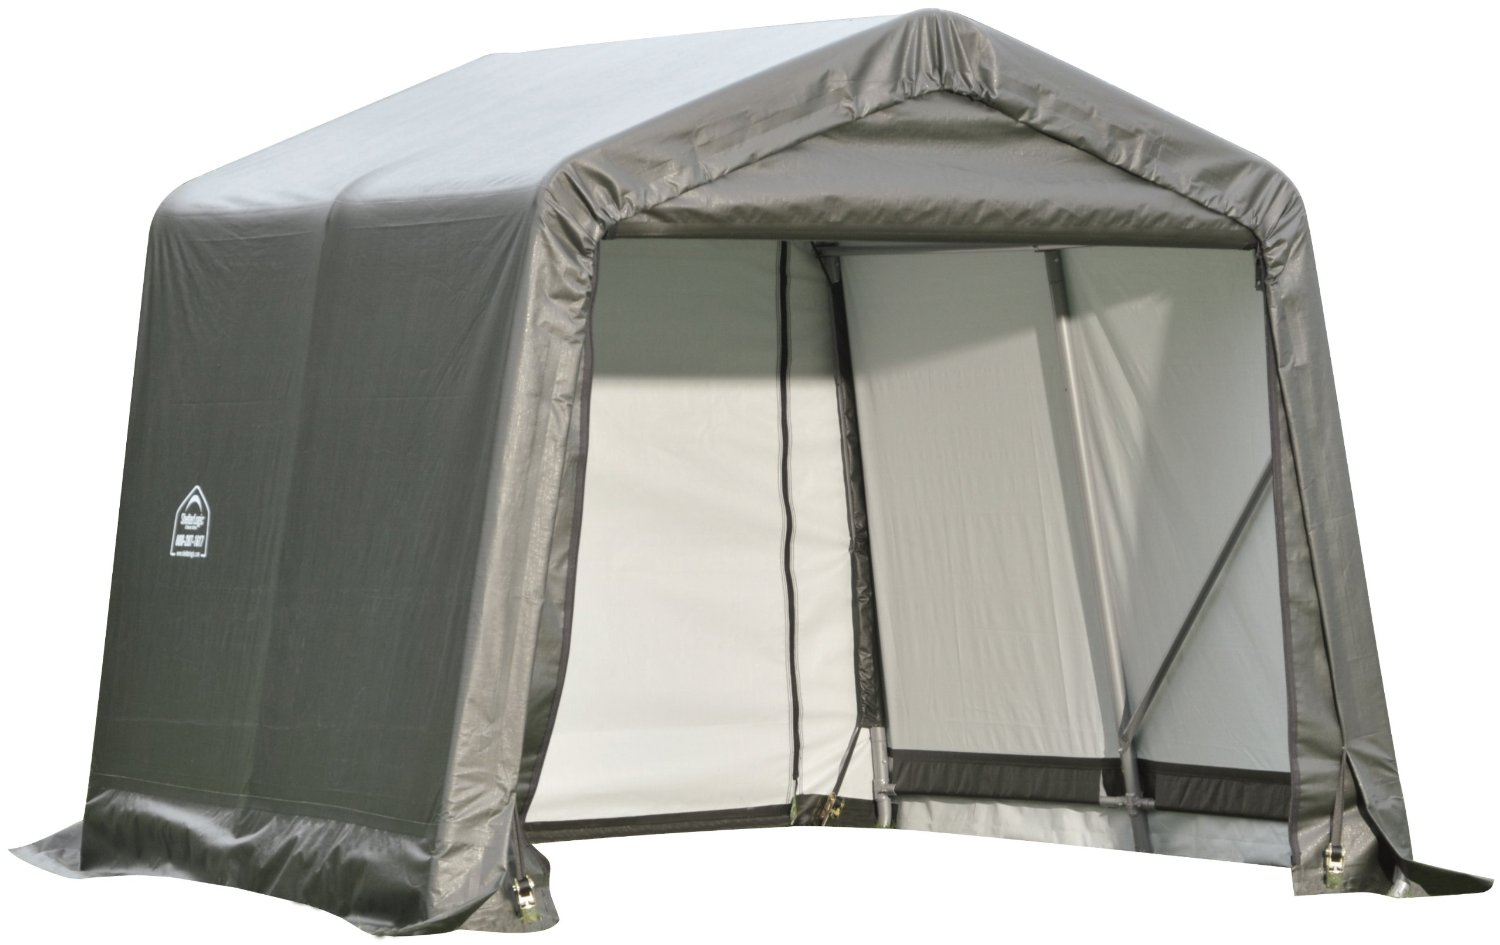 Peak Style Shelter, 11'x8'x10', Grey Cover